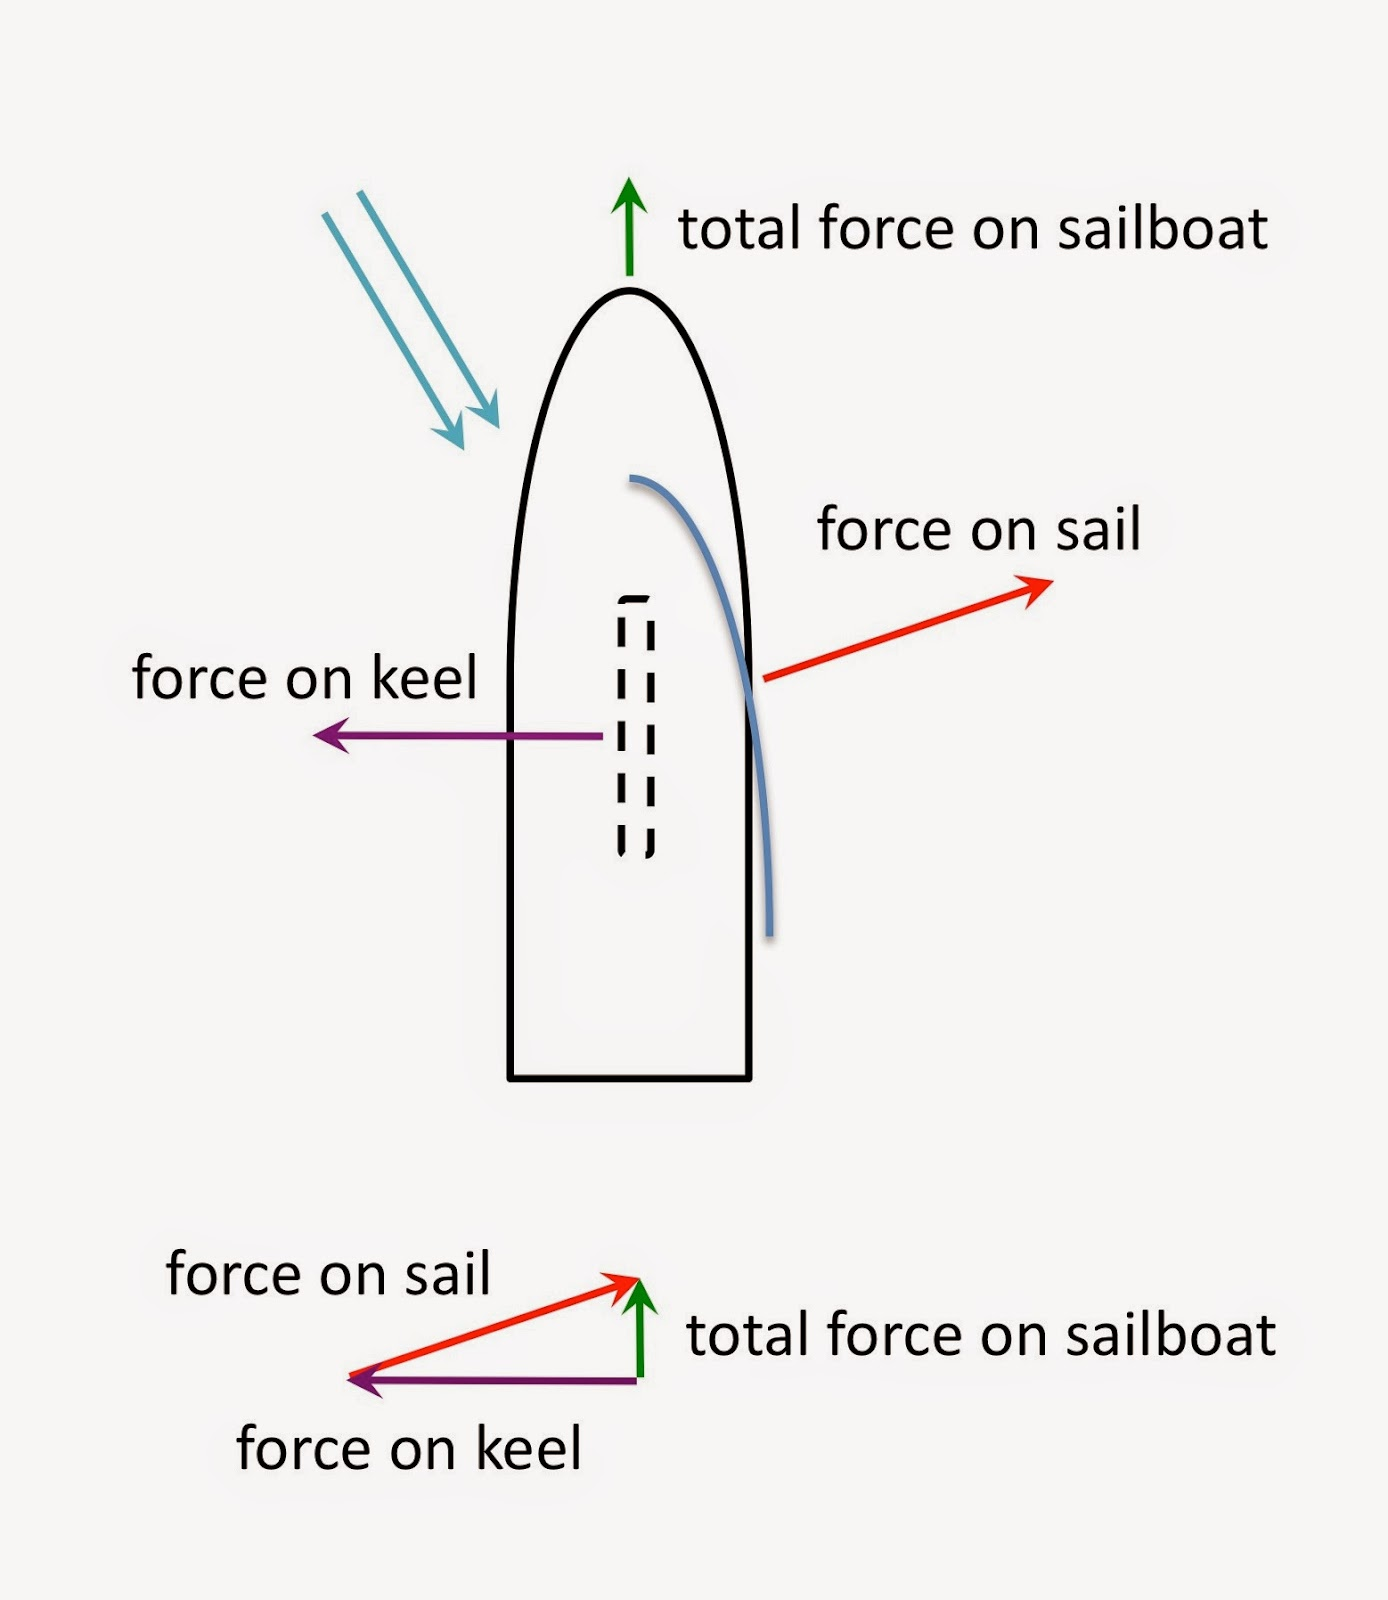 Physics buzz the physics of sailing how does a sailboat move upwind forces acting on a sailboat cancel each other such that the total force moves the sailboat forward the downward pointing keel is outlined by the dashed publicscrutiny Choice Image